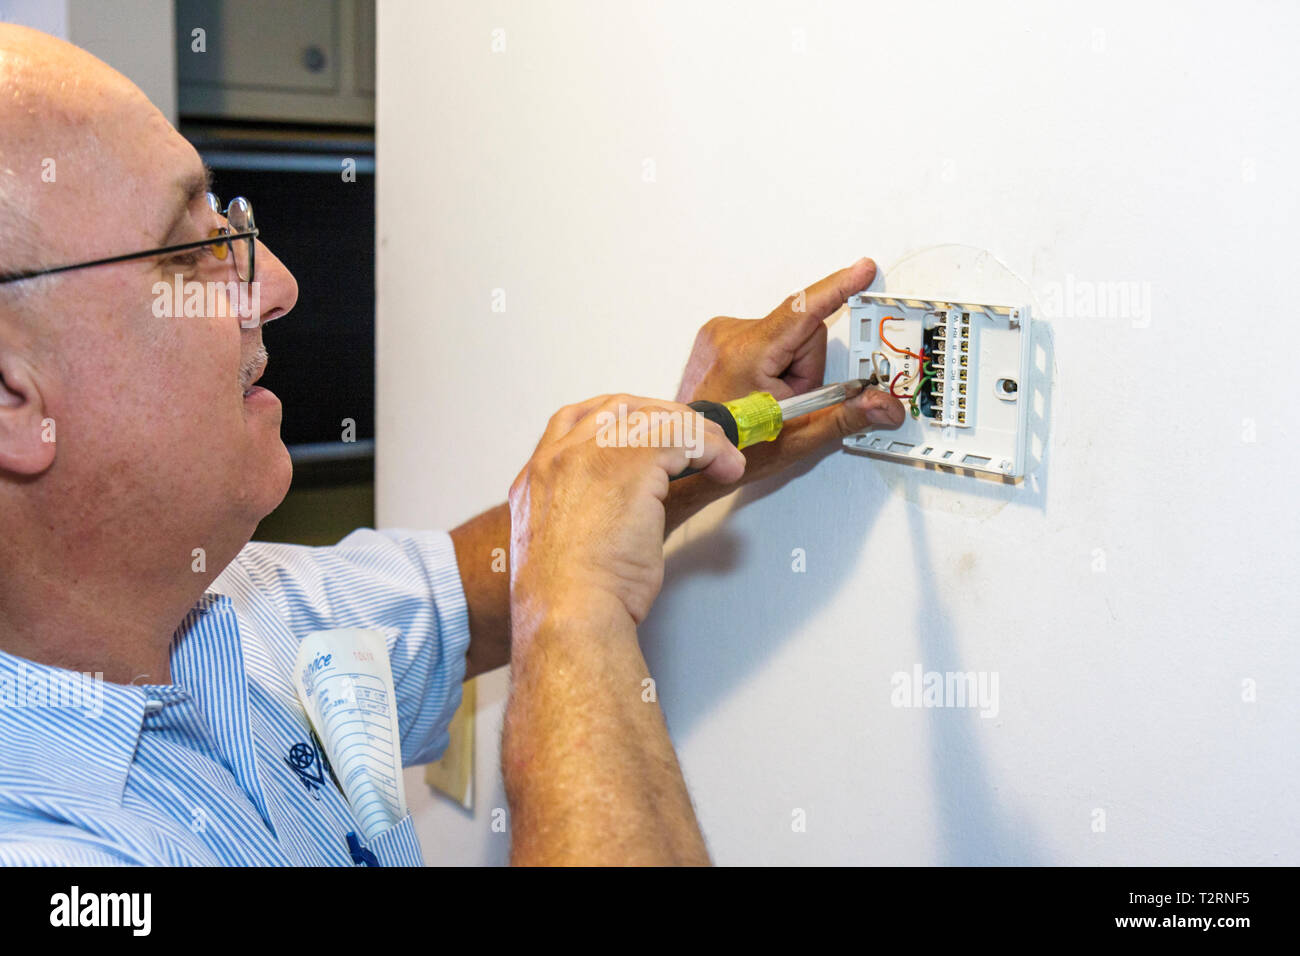 Miami Beach Florida Presidential Condominiums air conditioning mechanic Hispanic man worker repairman digital thermostat install - Stock Image